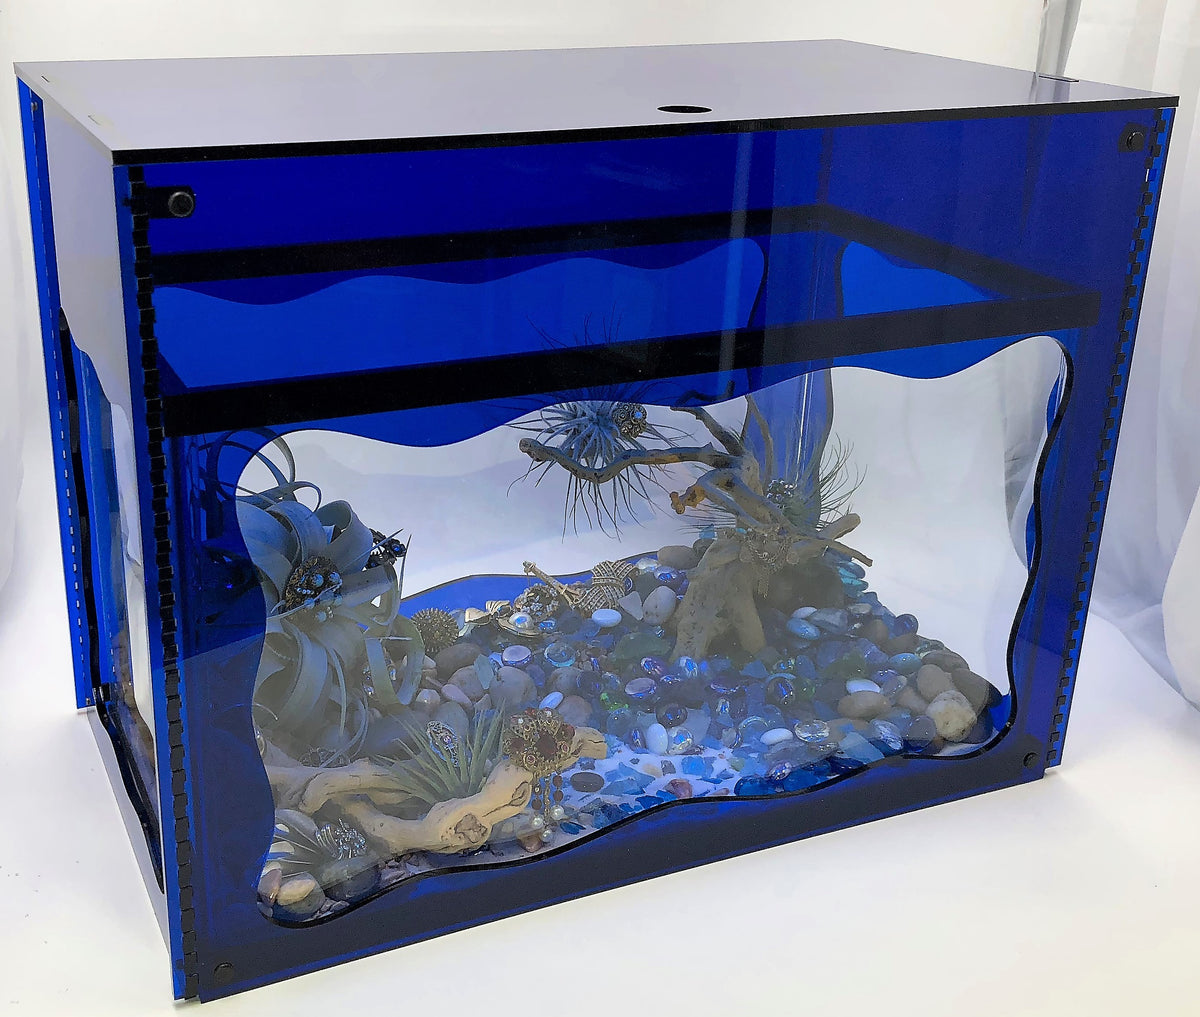 Aquarium Treasure Chest Cover - Sapphire Blue - Aquaterra Tank Decor